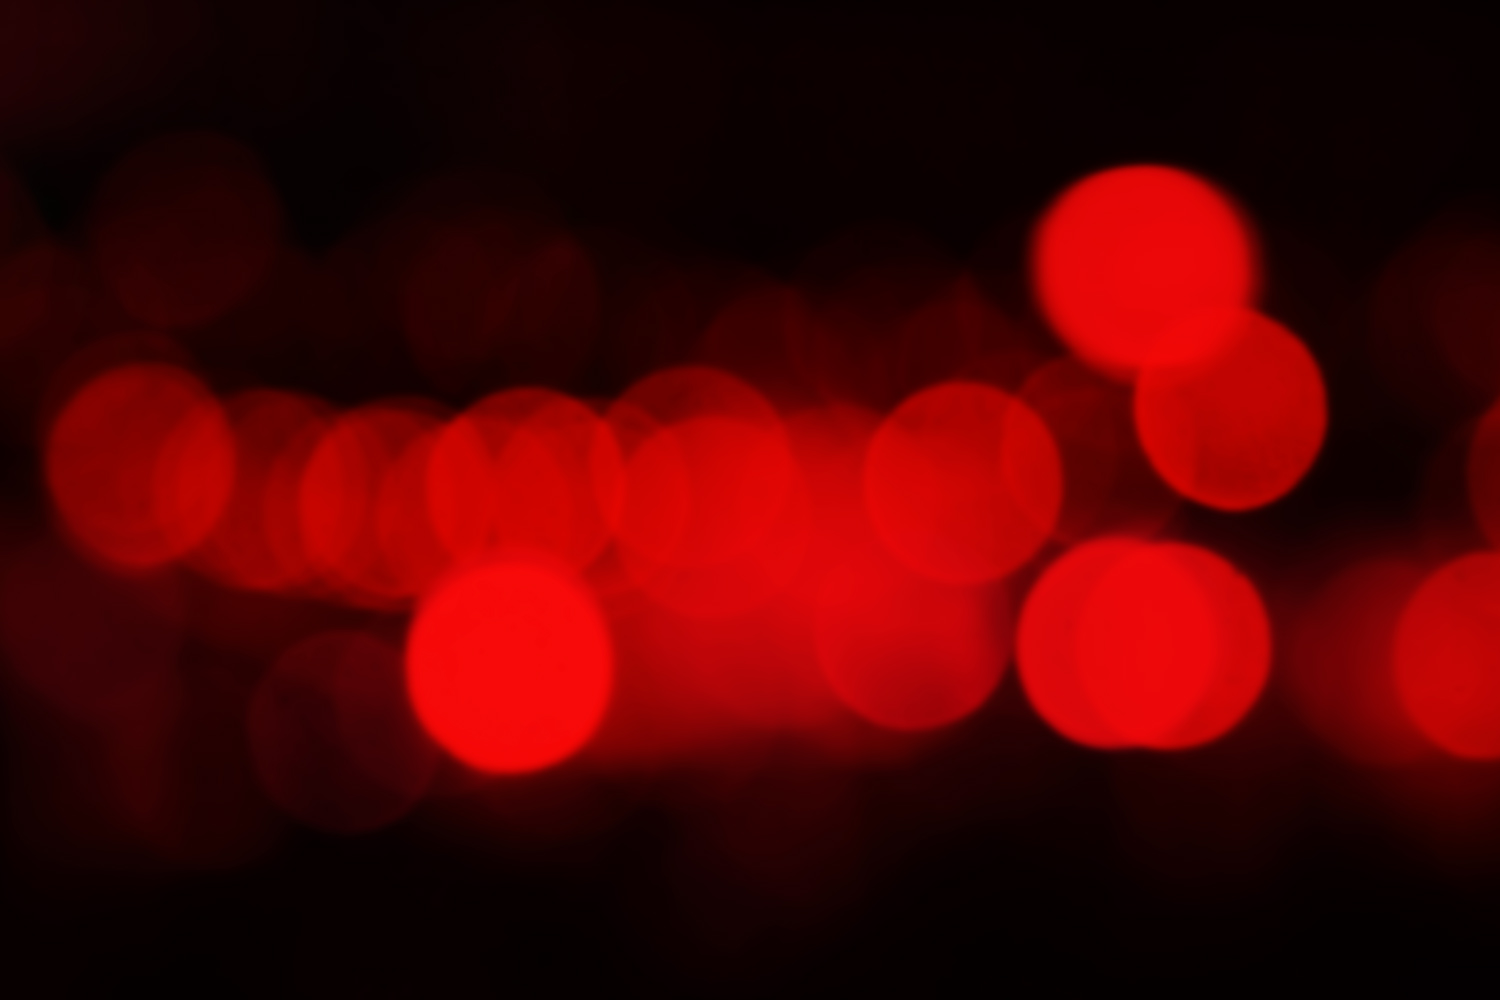 https://i0.wp.com/digital-photography-school.com/wp-content/uploads/2019/02/Photography_red_bokeh_night.jpg?resize=1500%2C1000&ssl=1